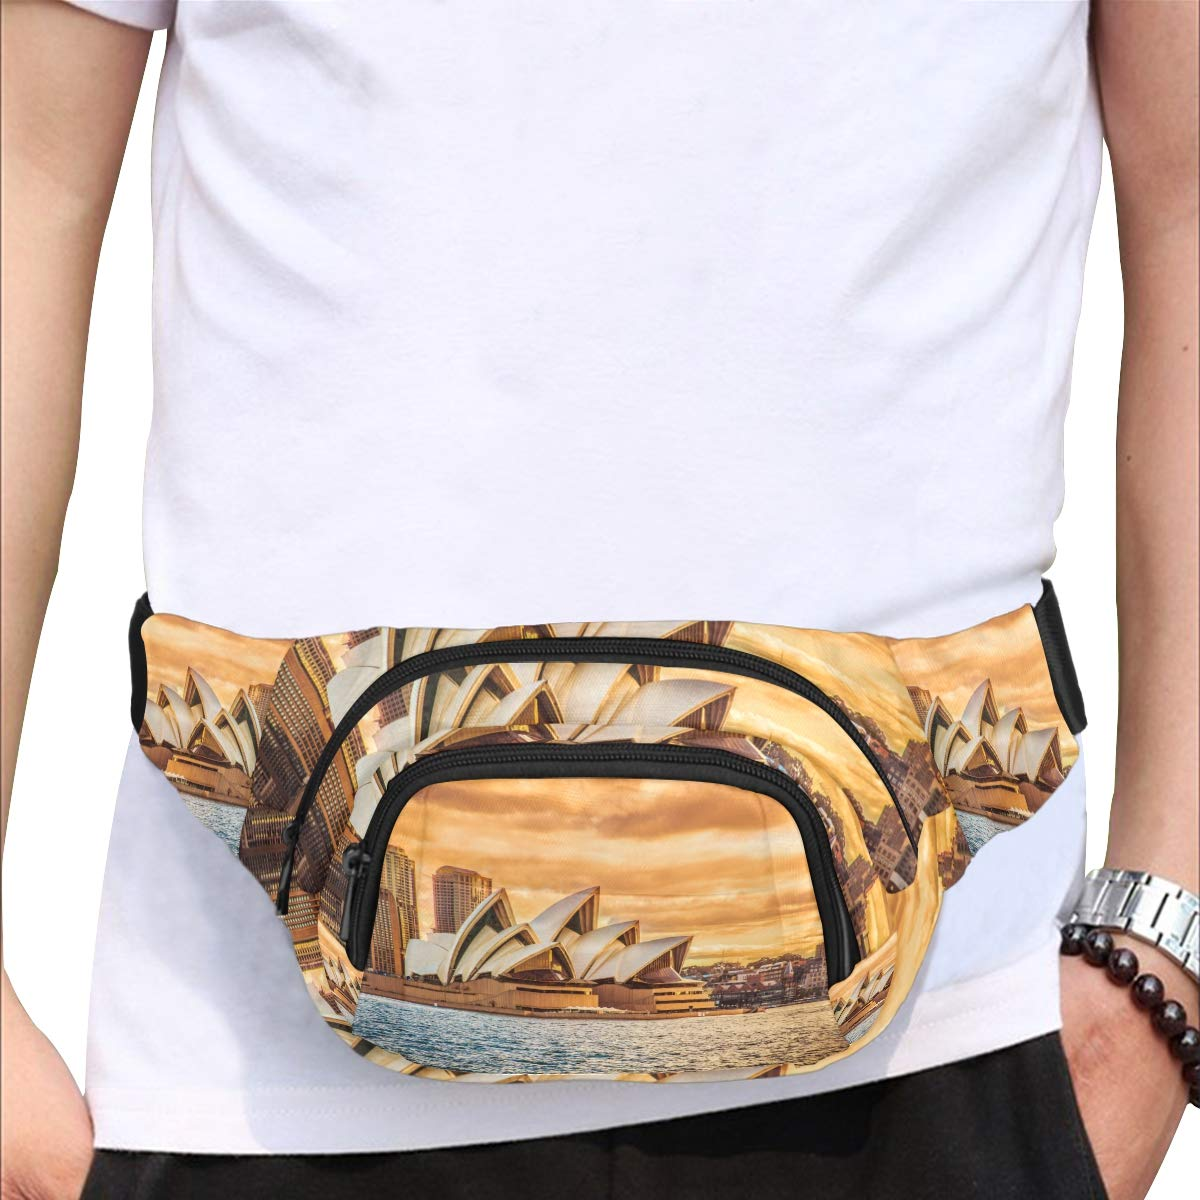 The Beautiful Sydney Opera House Fenny Packs Waist Bags Adjustable Belt Waterproof Nylon Travel Running Sport Vacation Party For Men Women Boys Girls Kids